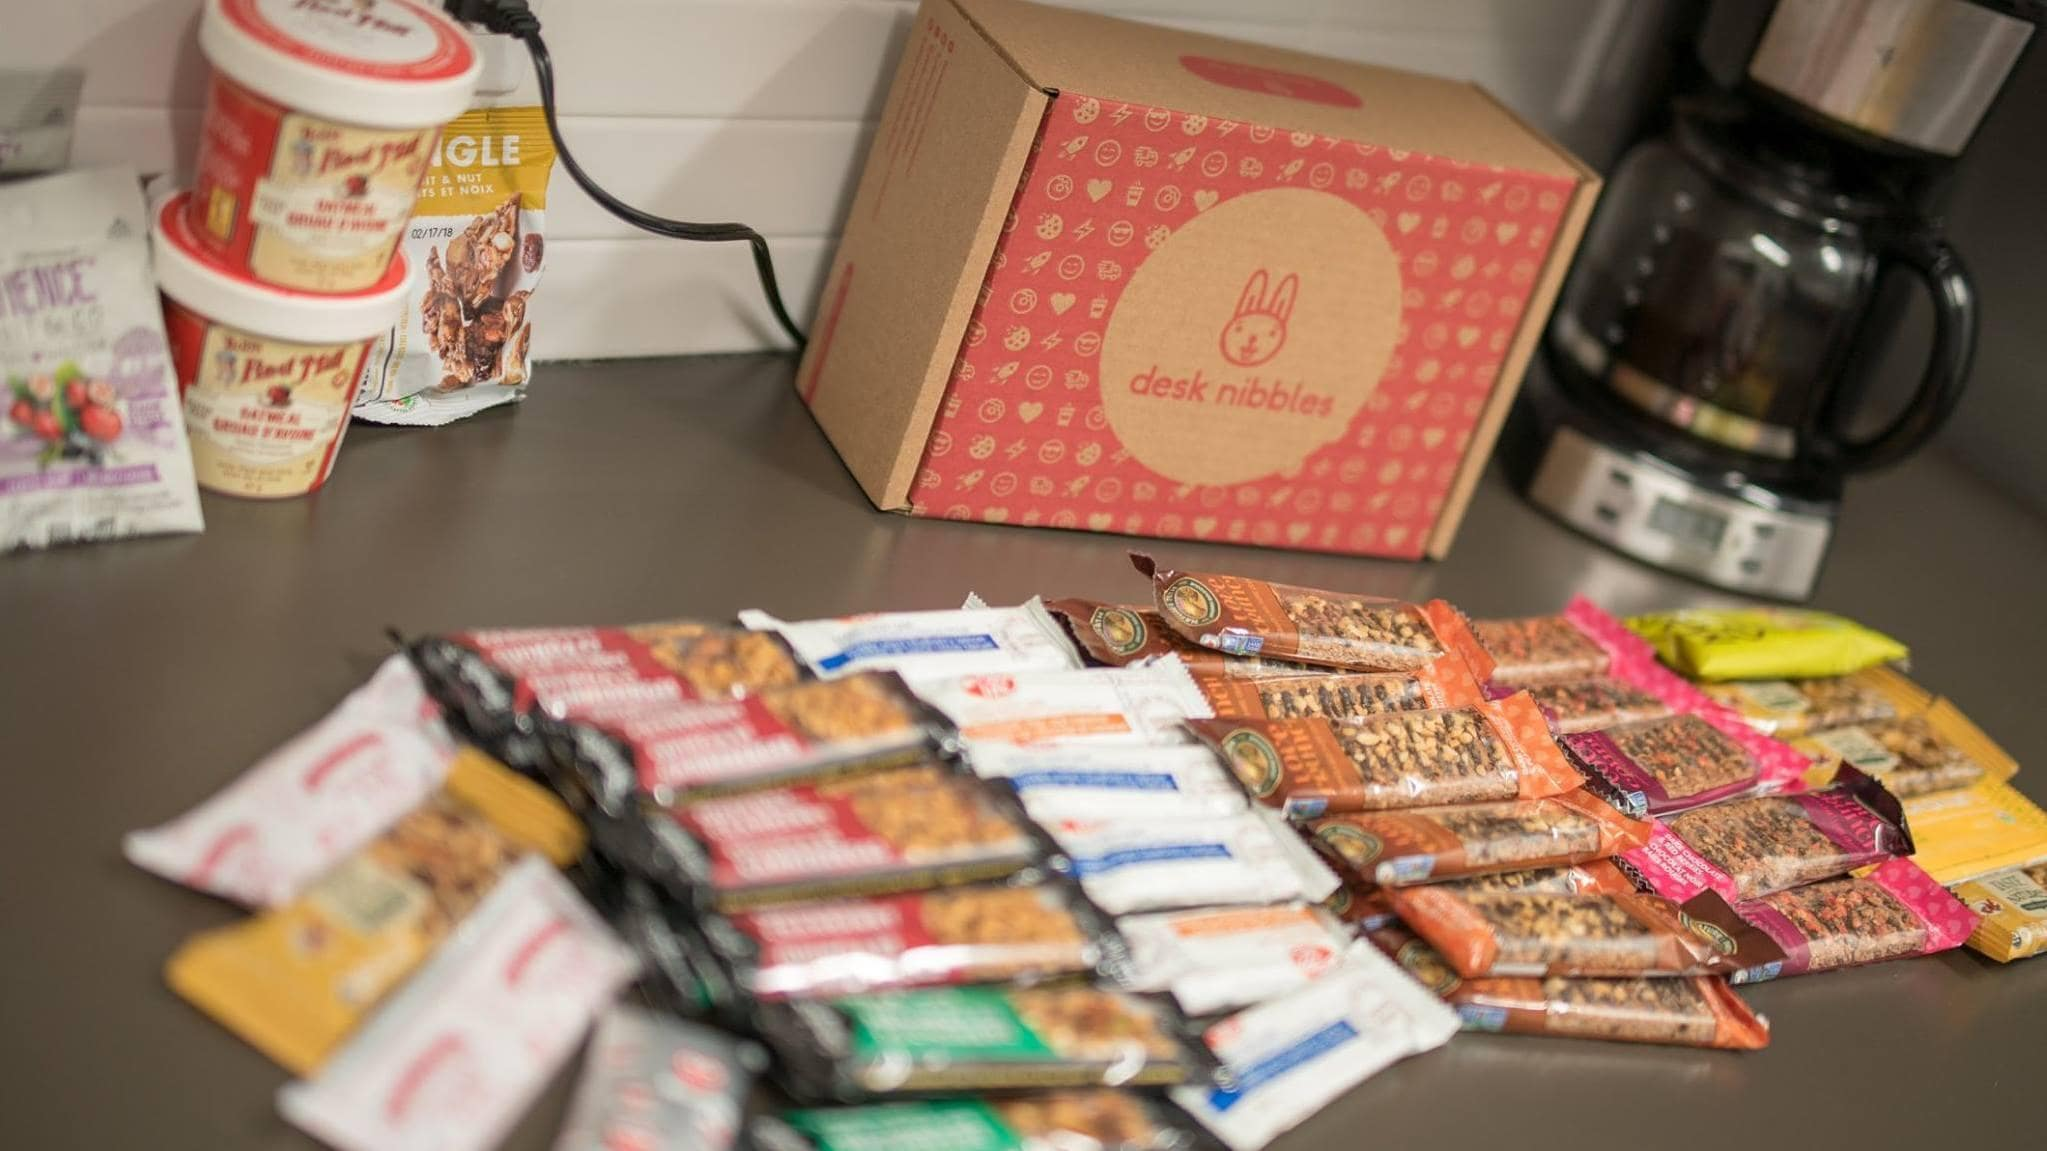 Order some Halloween snacks with Desk Nibbles office snack delivery.